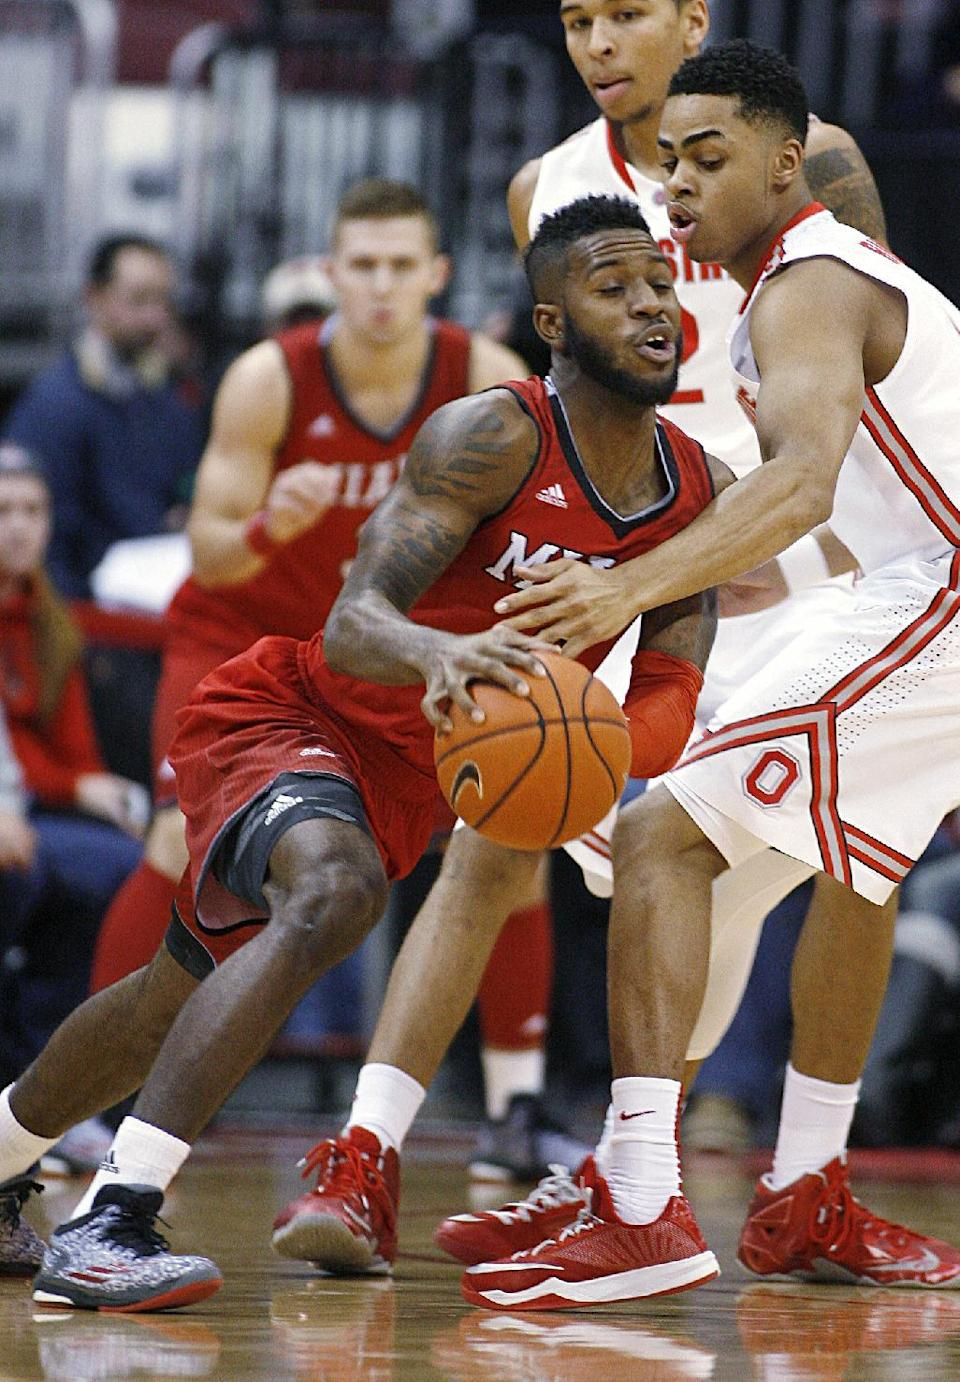 Ohio State's D'Angelo Russell (0), right, slows down Miami's Geovonie McKnight (0) in the first half of an NCAA basketball game, Monday, Dec. 22, 2014, in Columbus, Ohio. (AP Photo/Mike Munden)